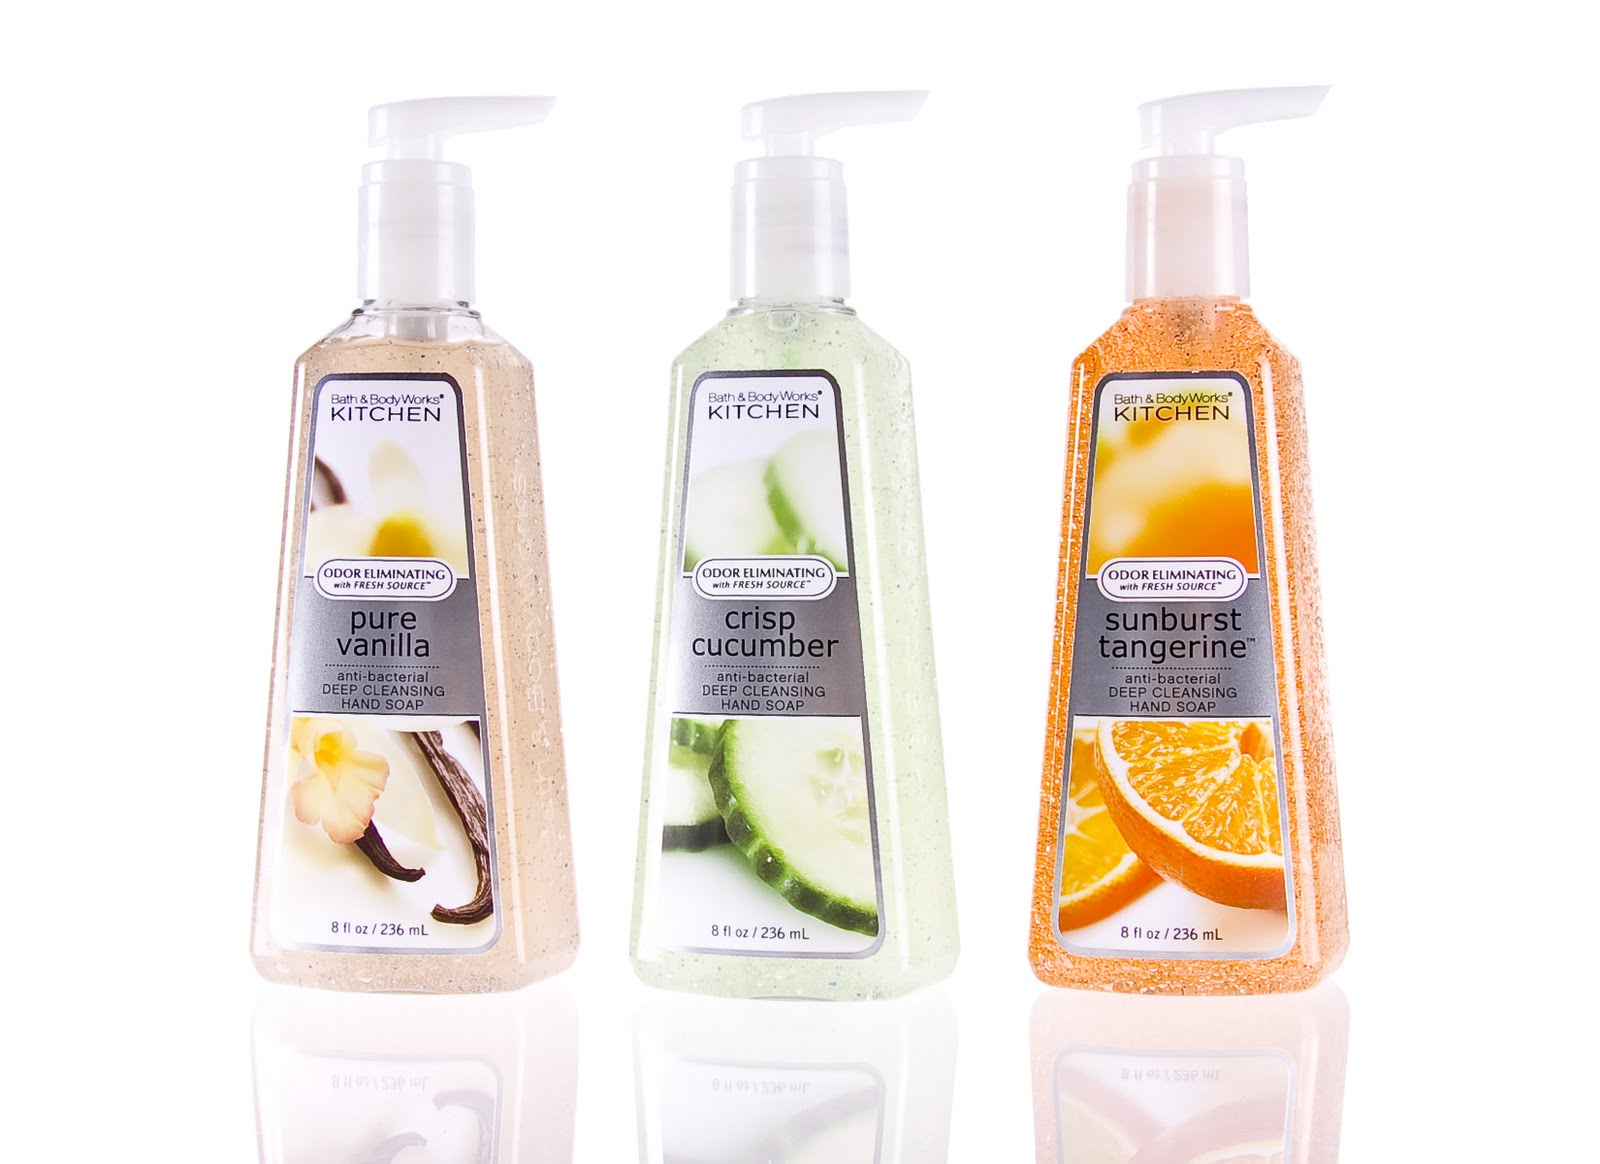 Bath Body Works Healthy Clean Kitchen Collection Spoiled Pretty